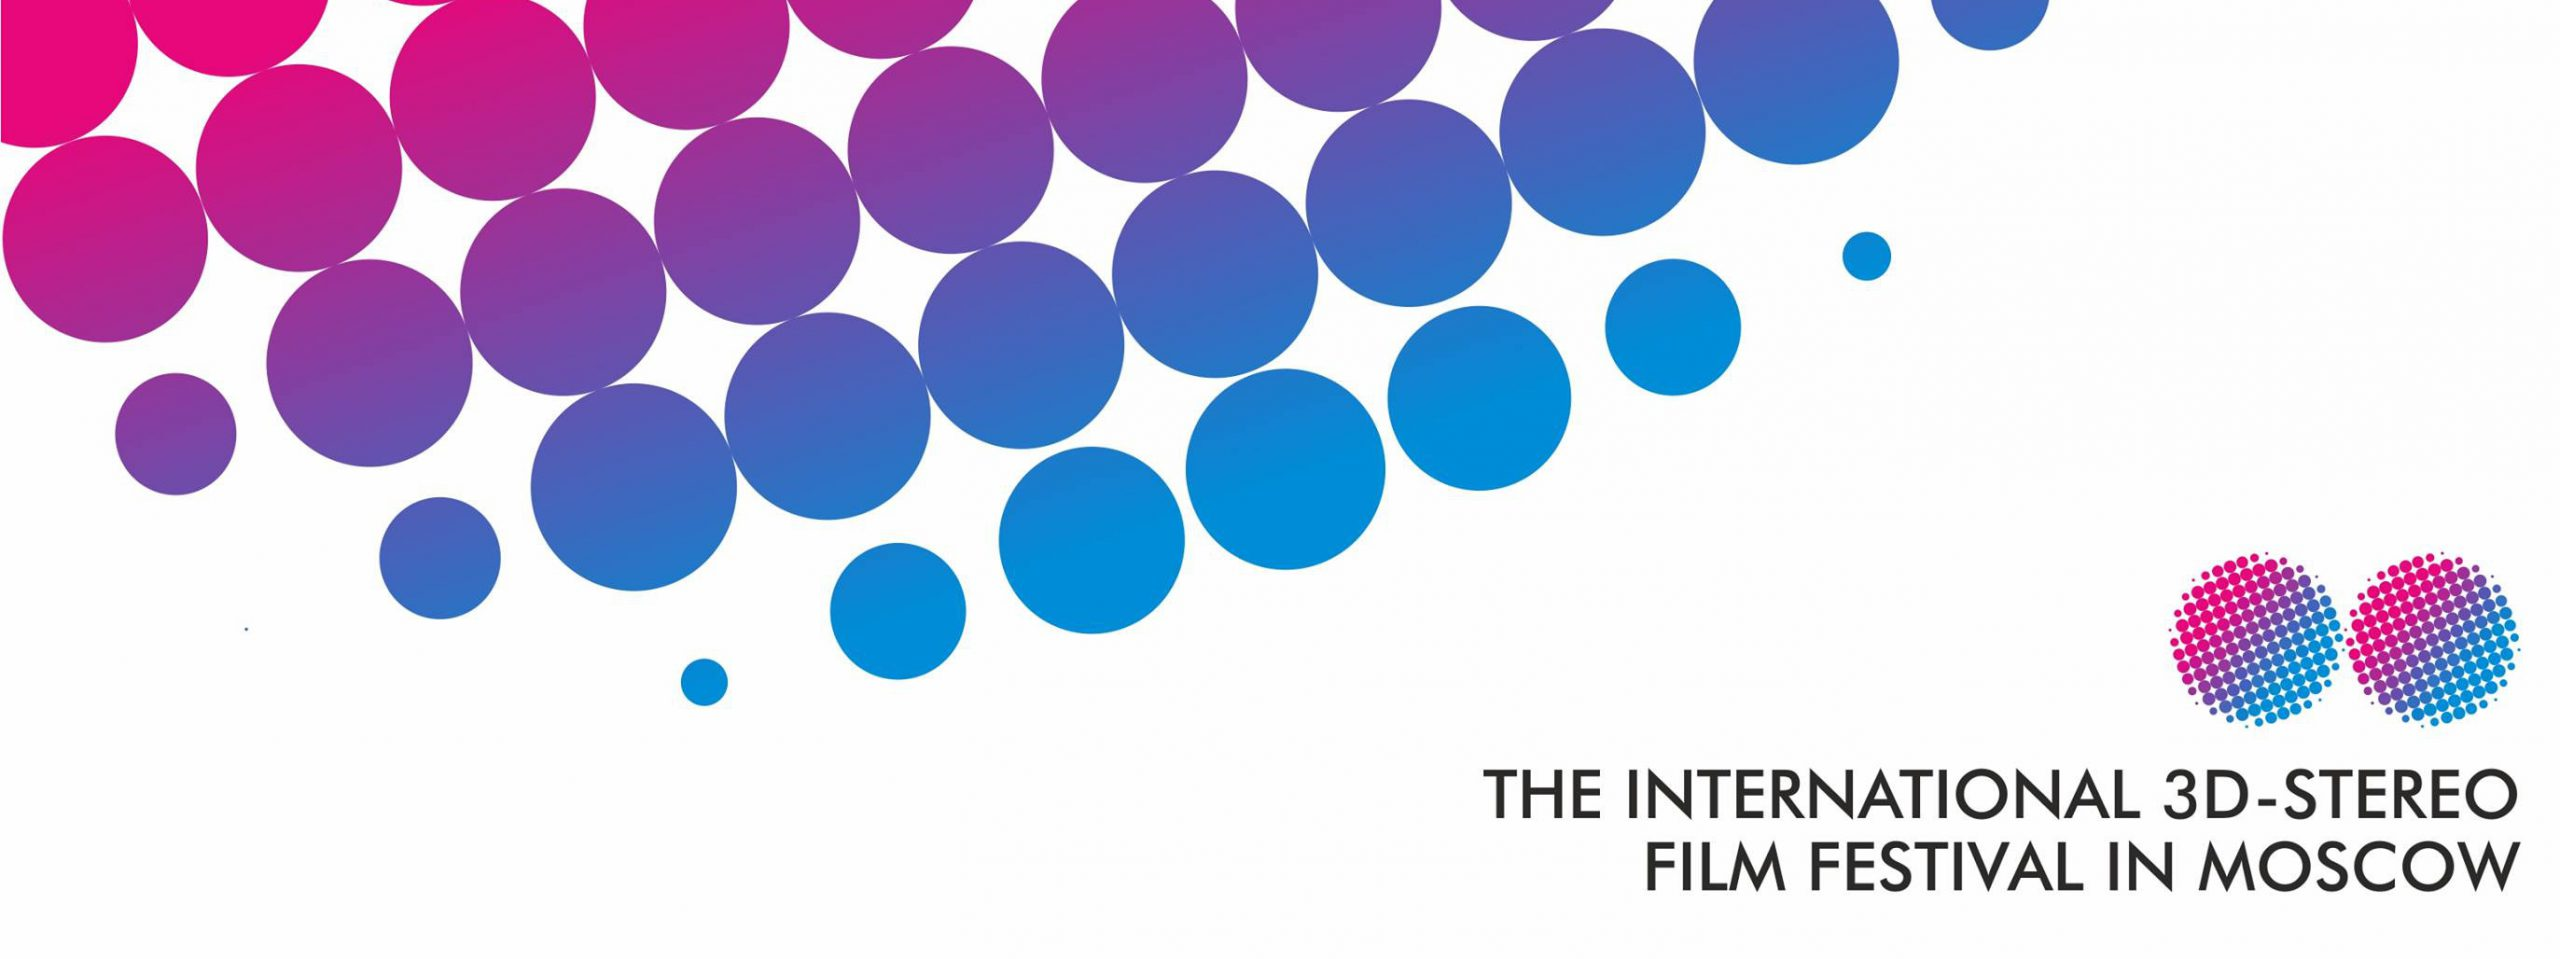 The International 3D-stereo Film Festival